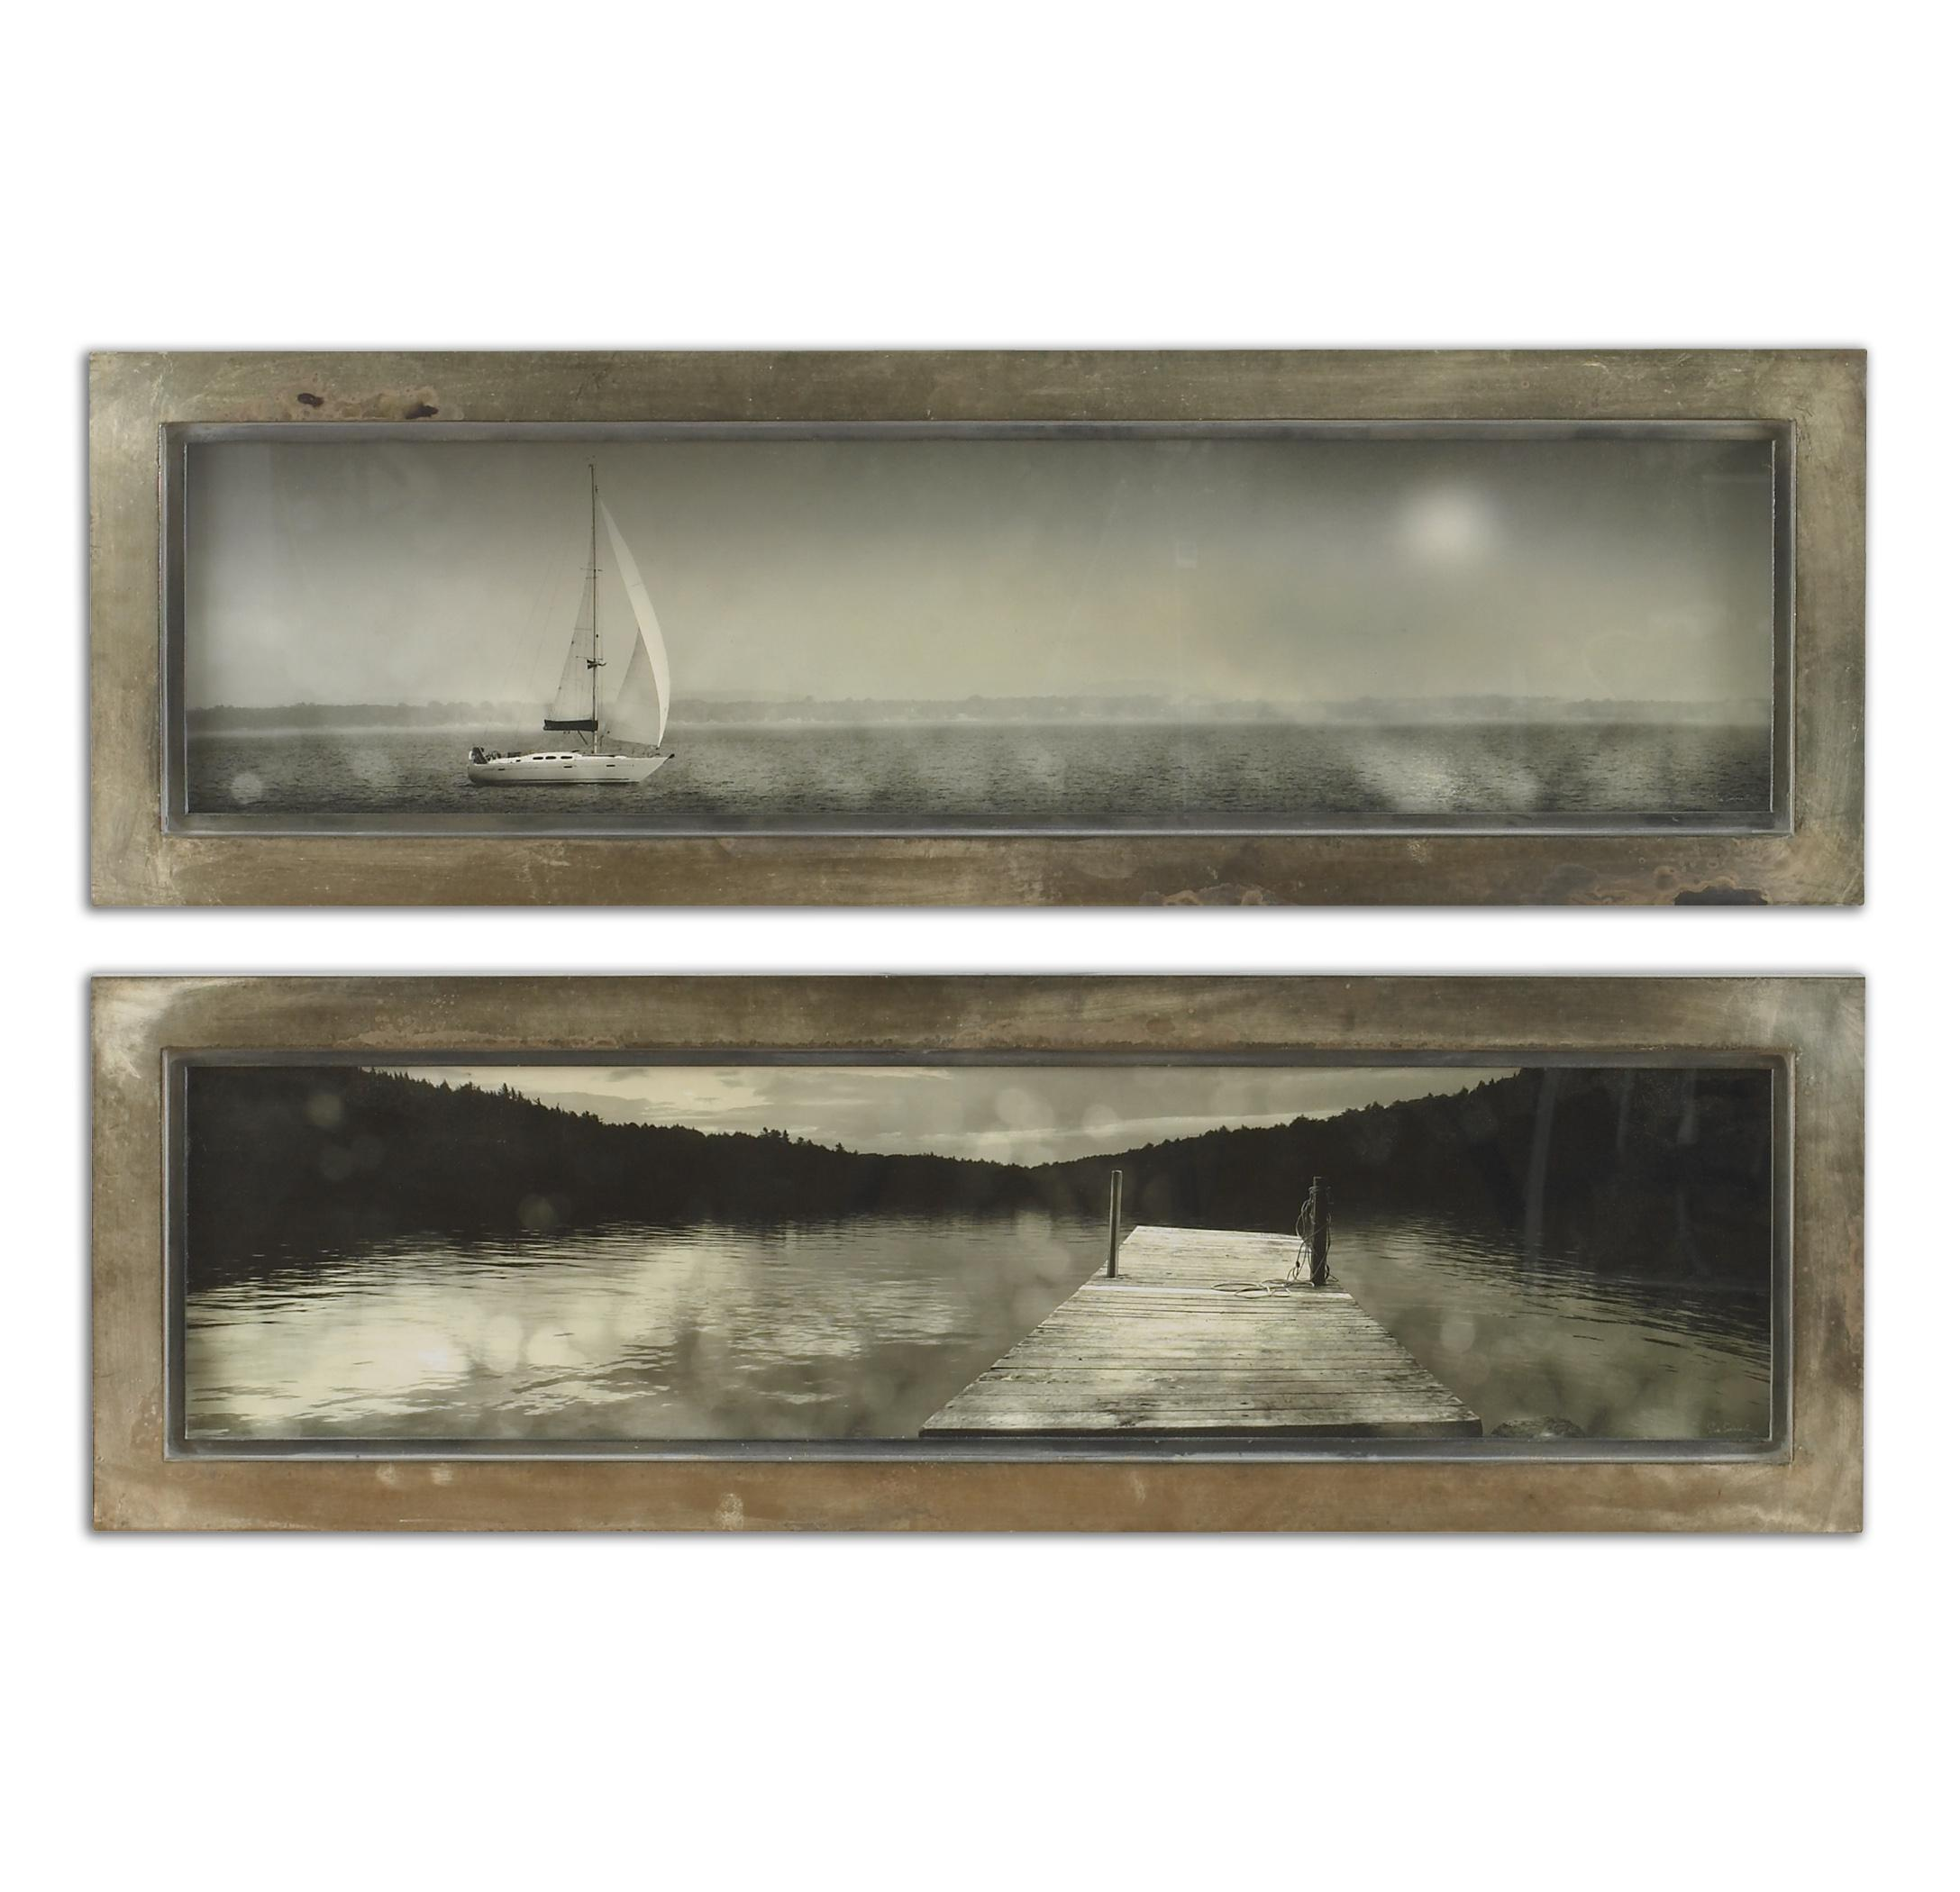 Uttermost Art Twilight Sail Framed Art Set of 2 - Item Number: 35232